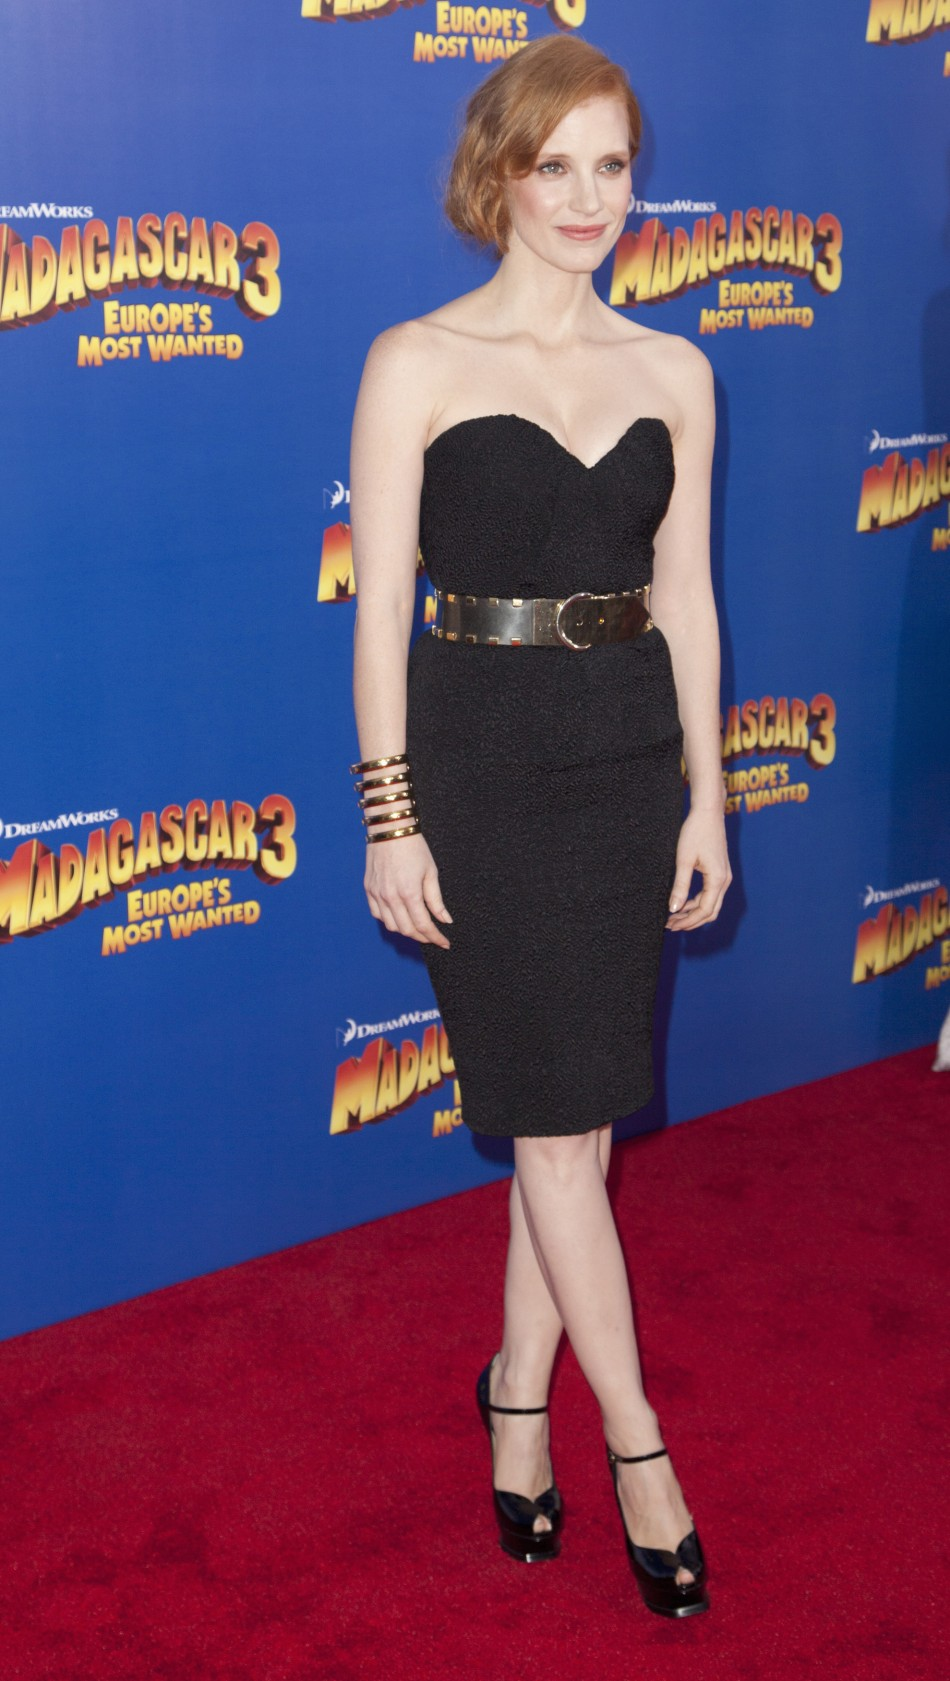 Cast member Jessica Chastain arrives for the premiere of quotMadagascar 3 Europes Most Wantedquot in New York